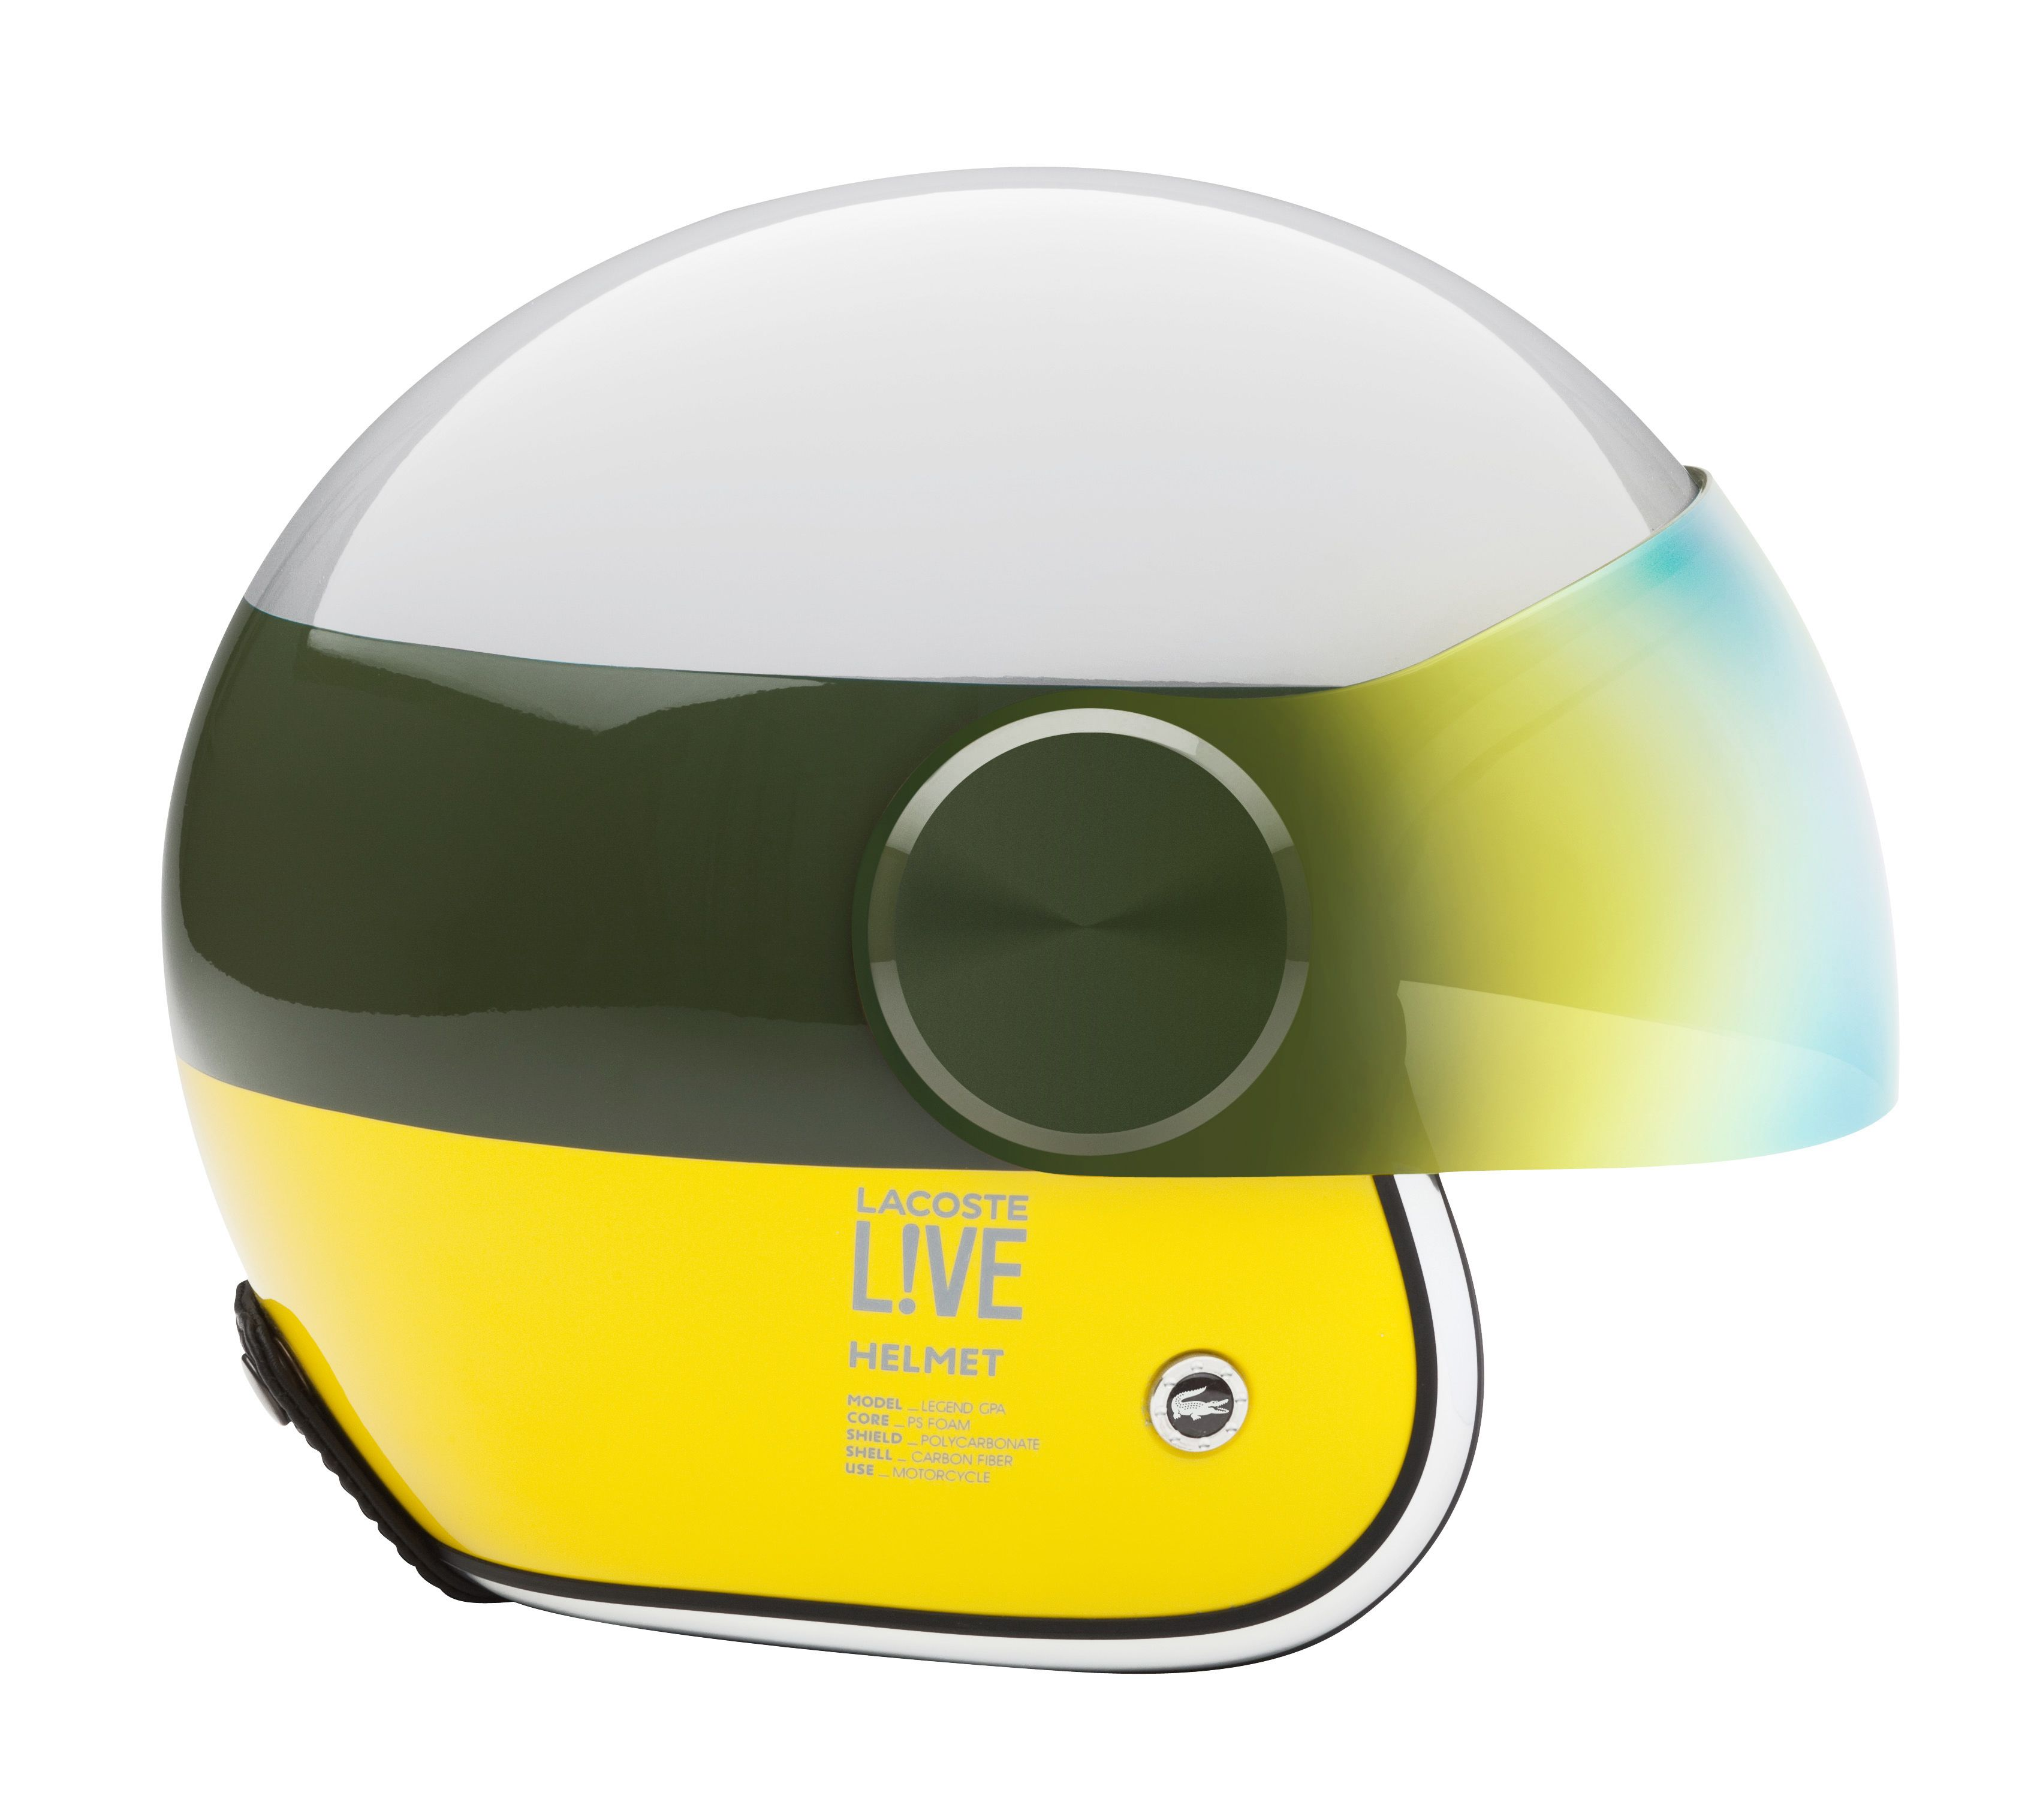 c426097a1086 Lacoste Lab for Lacoste L!VE Scooter Helmet. Engineered by GPA Design.